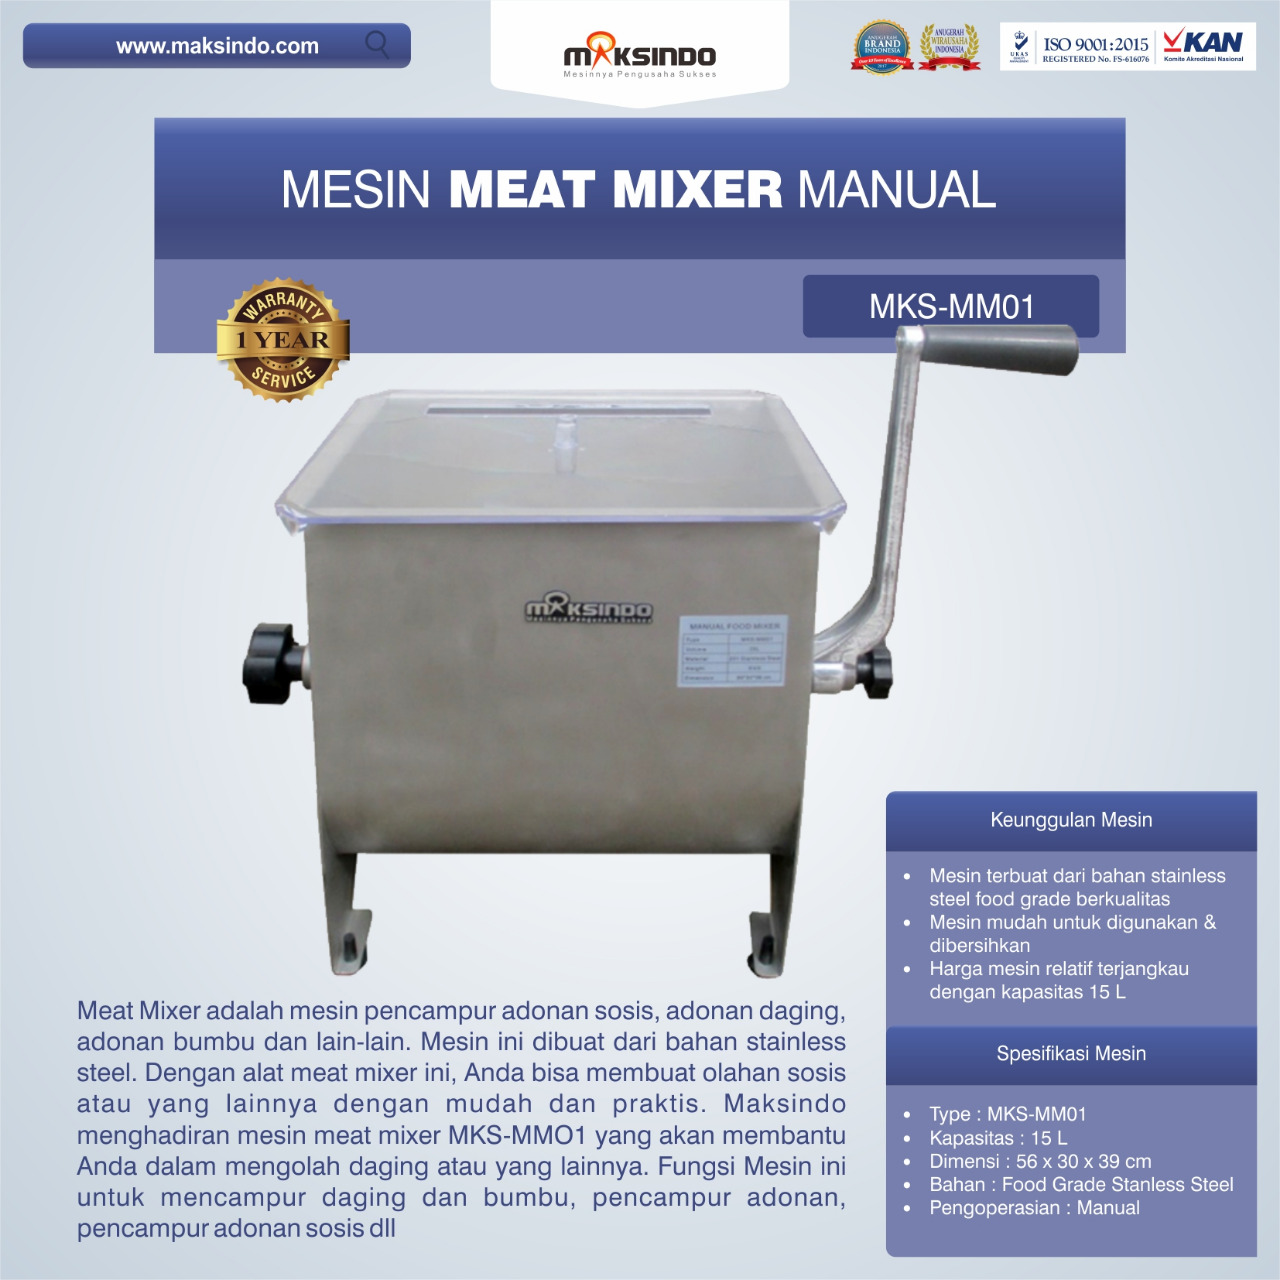 Jual Manual Meat Mixer MKS-MM01 di Mataram